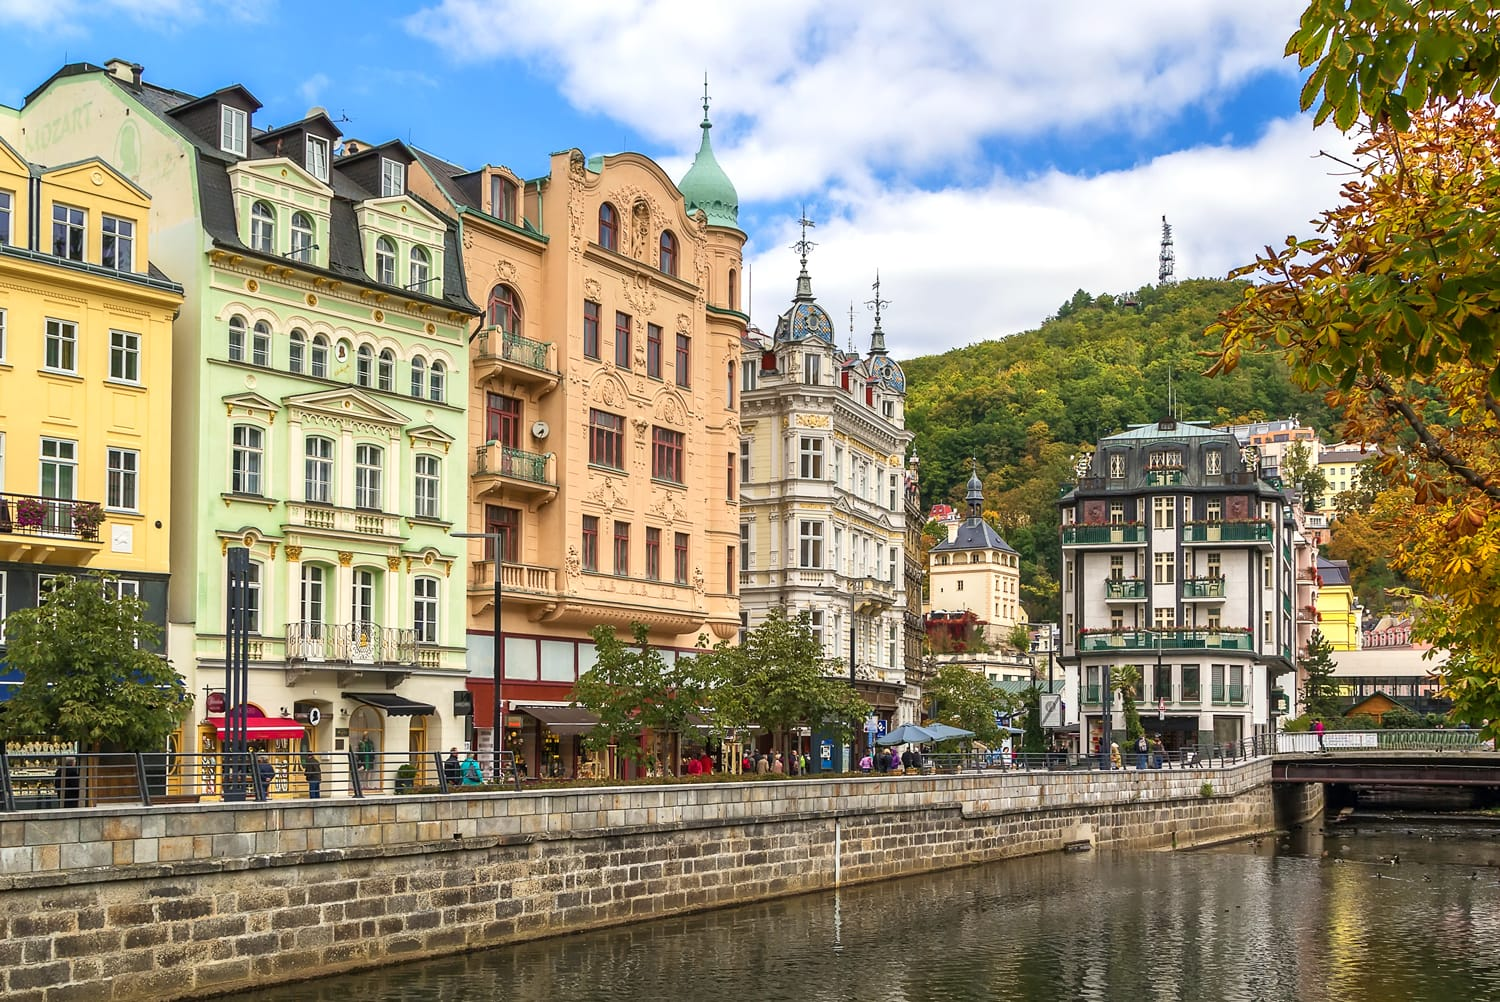 Embankment of Tepla river in the center of Karlovy Vary, Czech republic